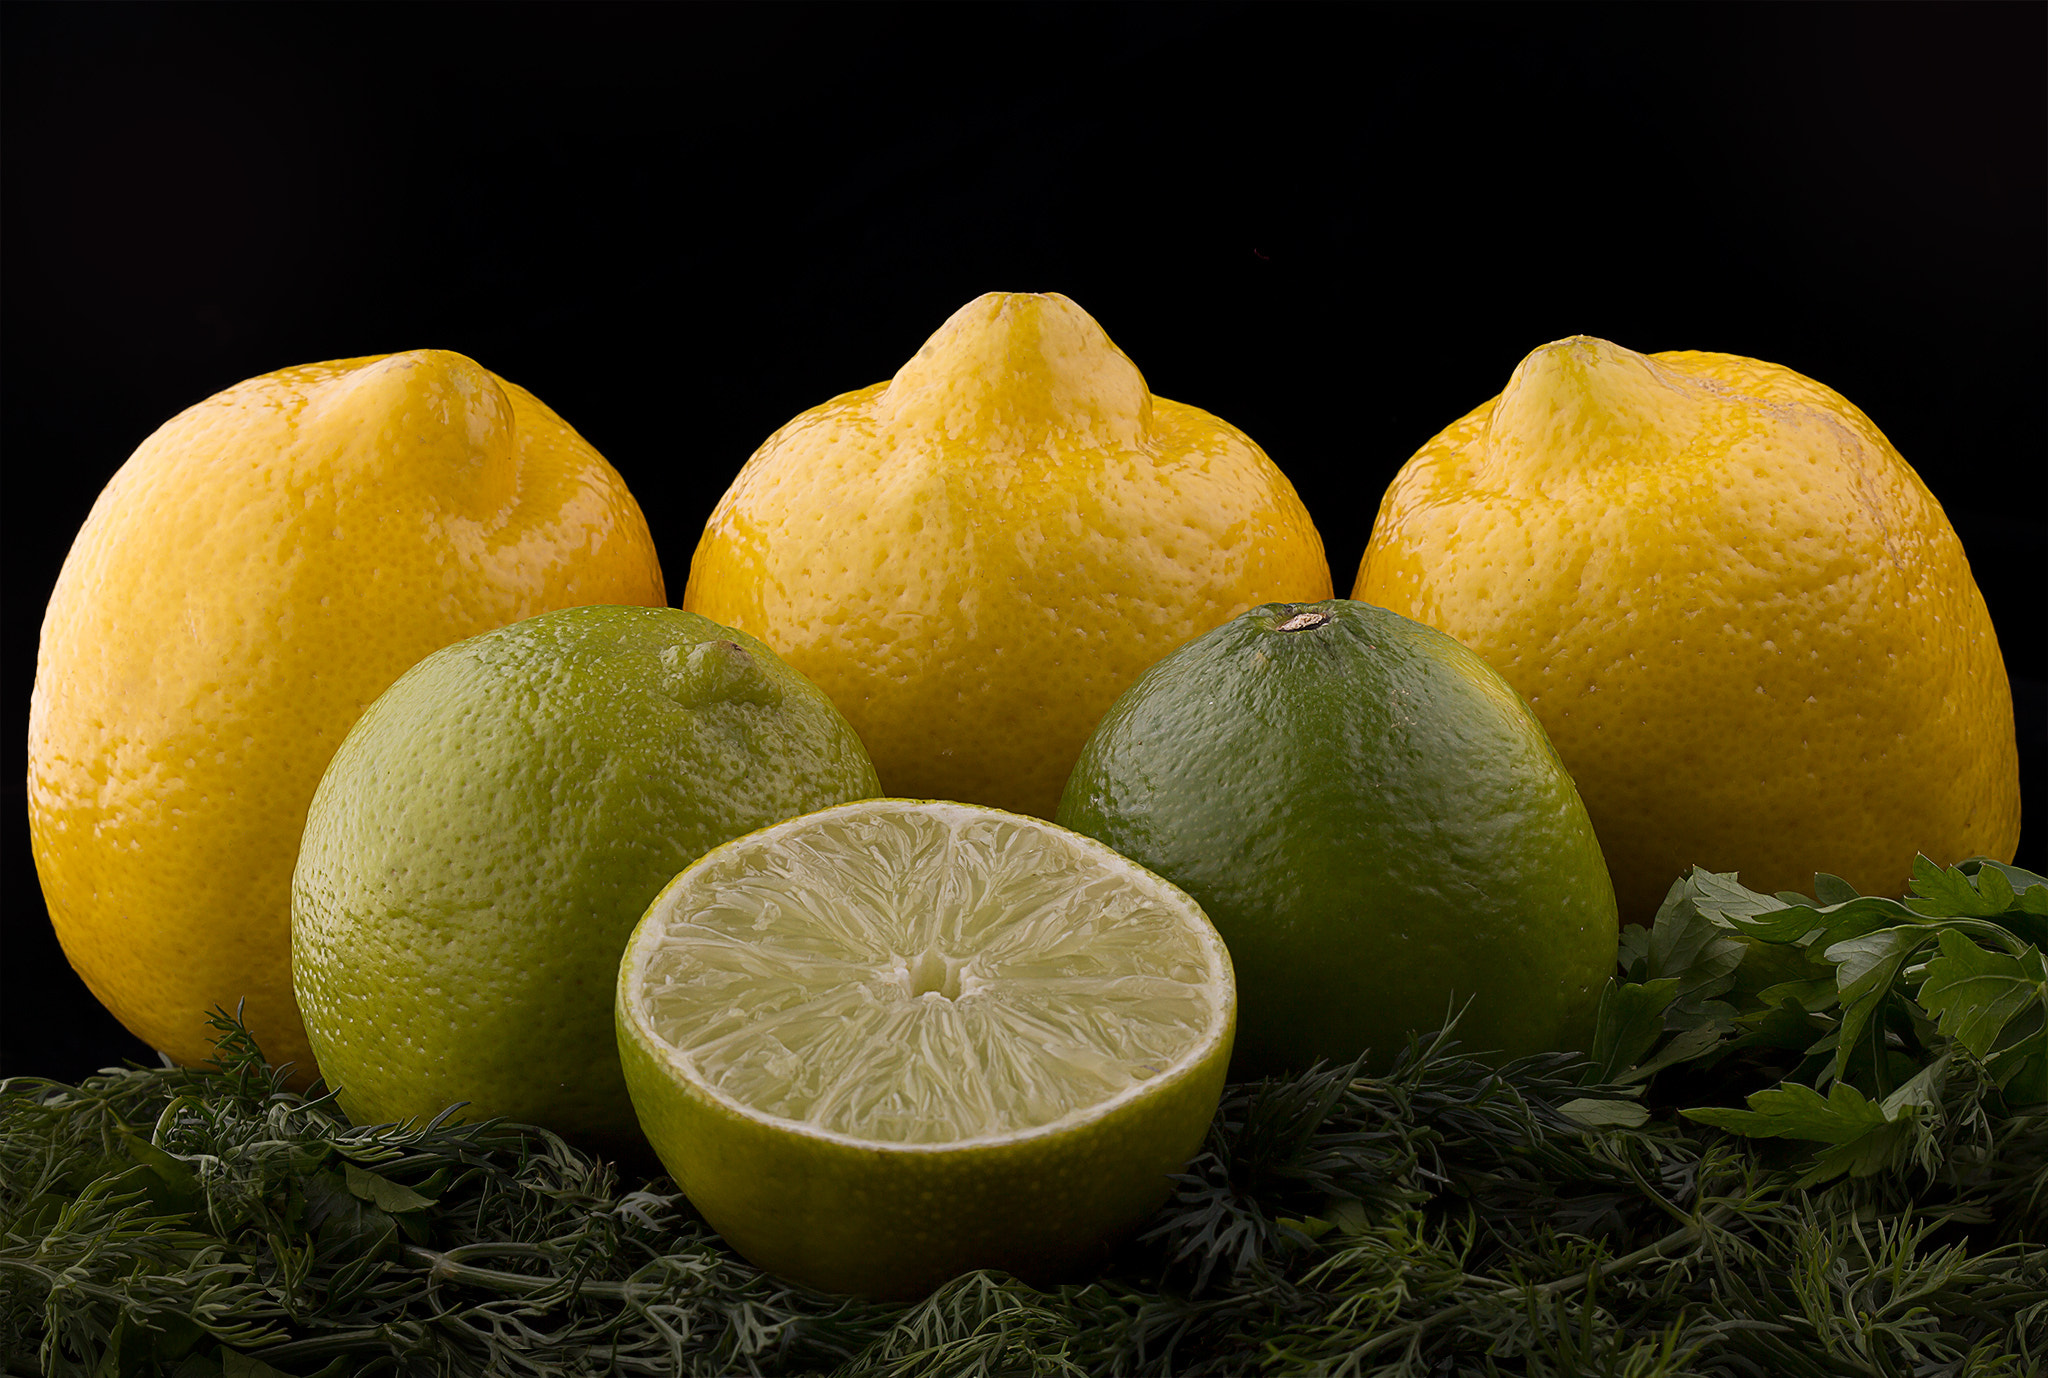 Photograph Lemons and Limes by Vasily Menshov on 500px